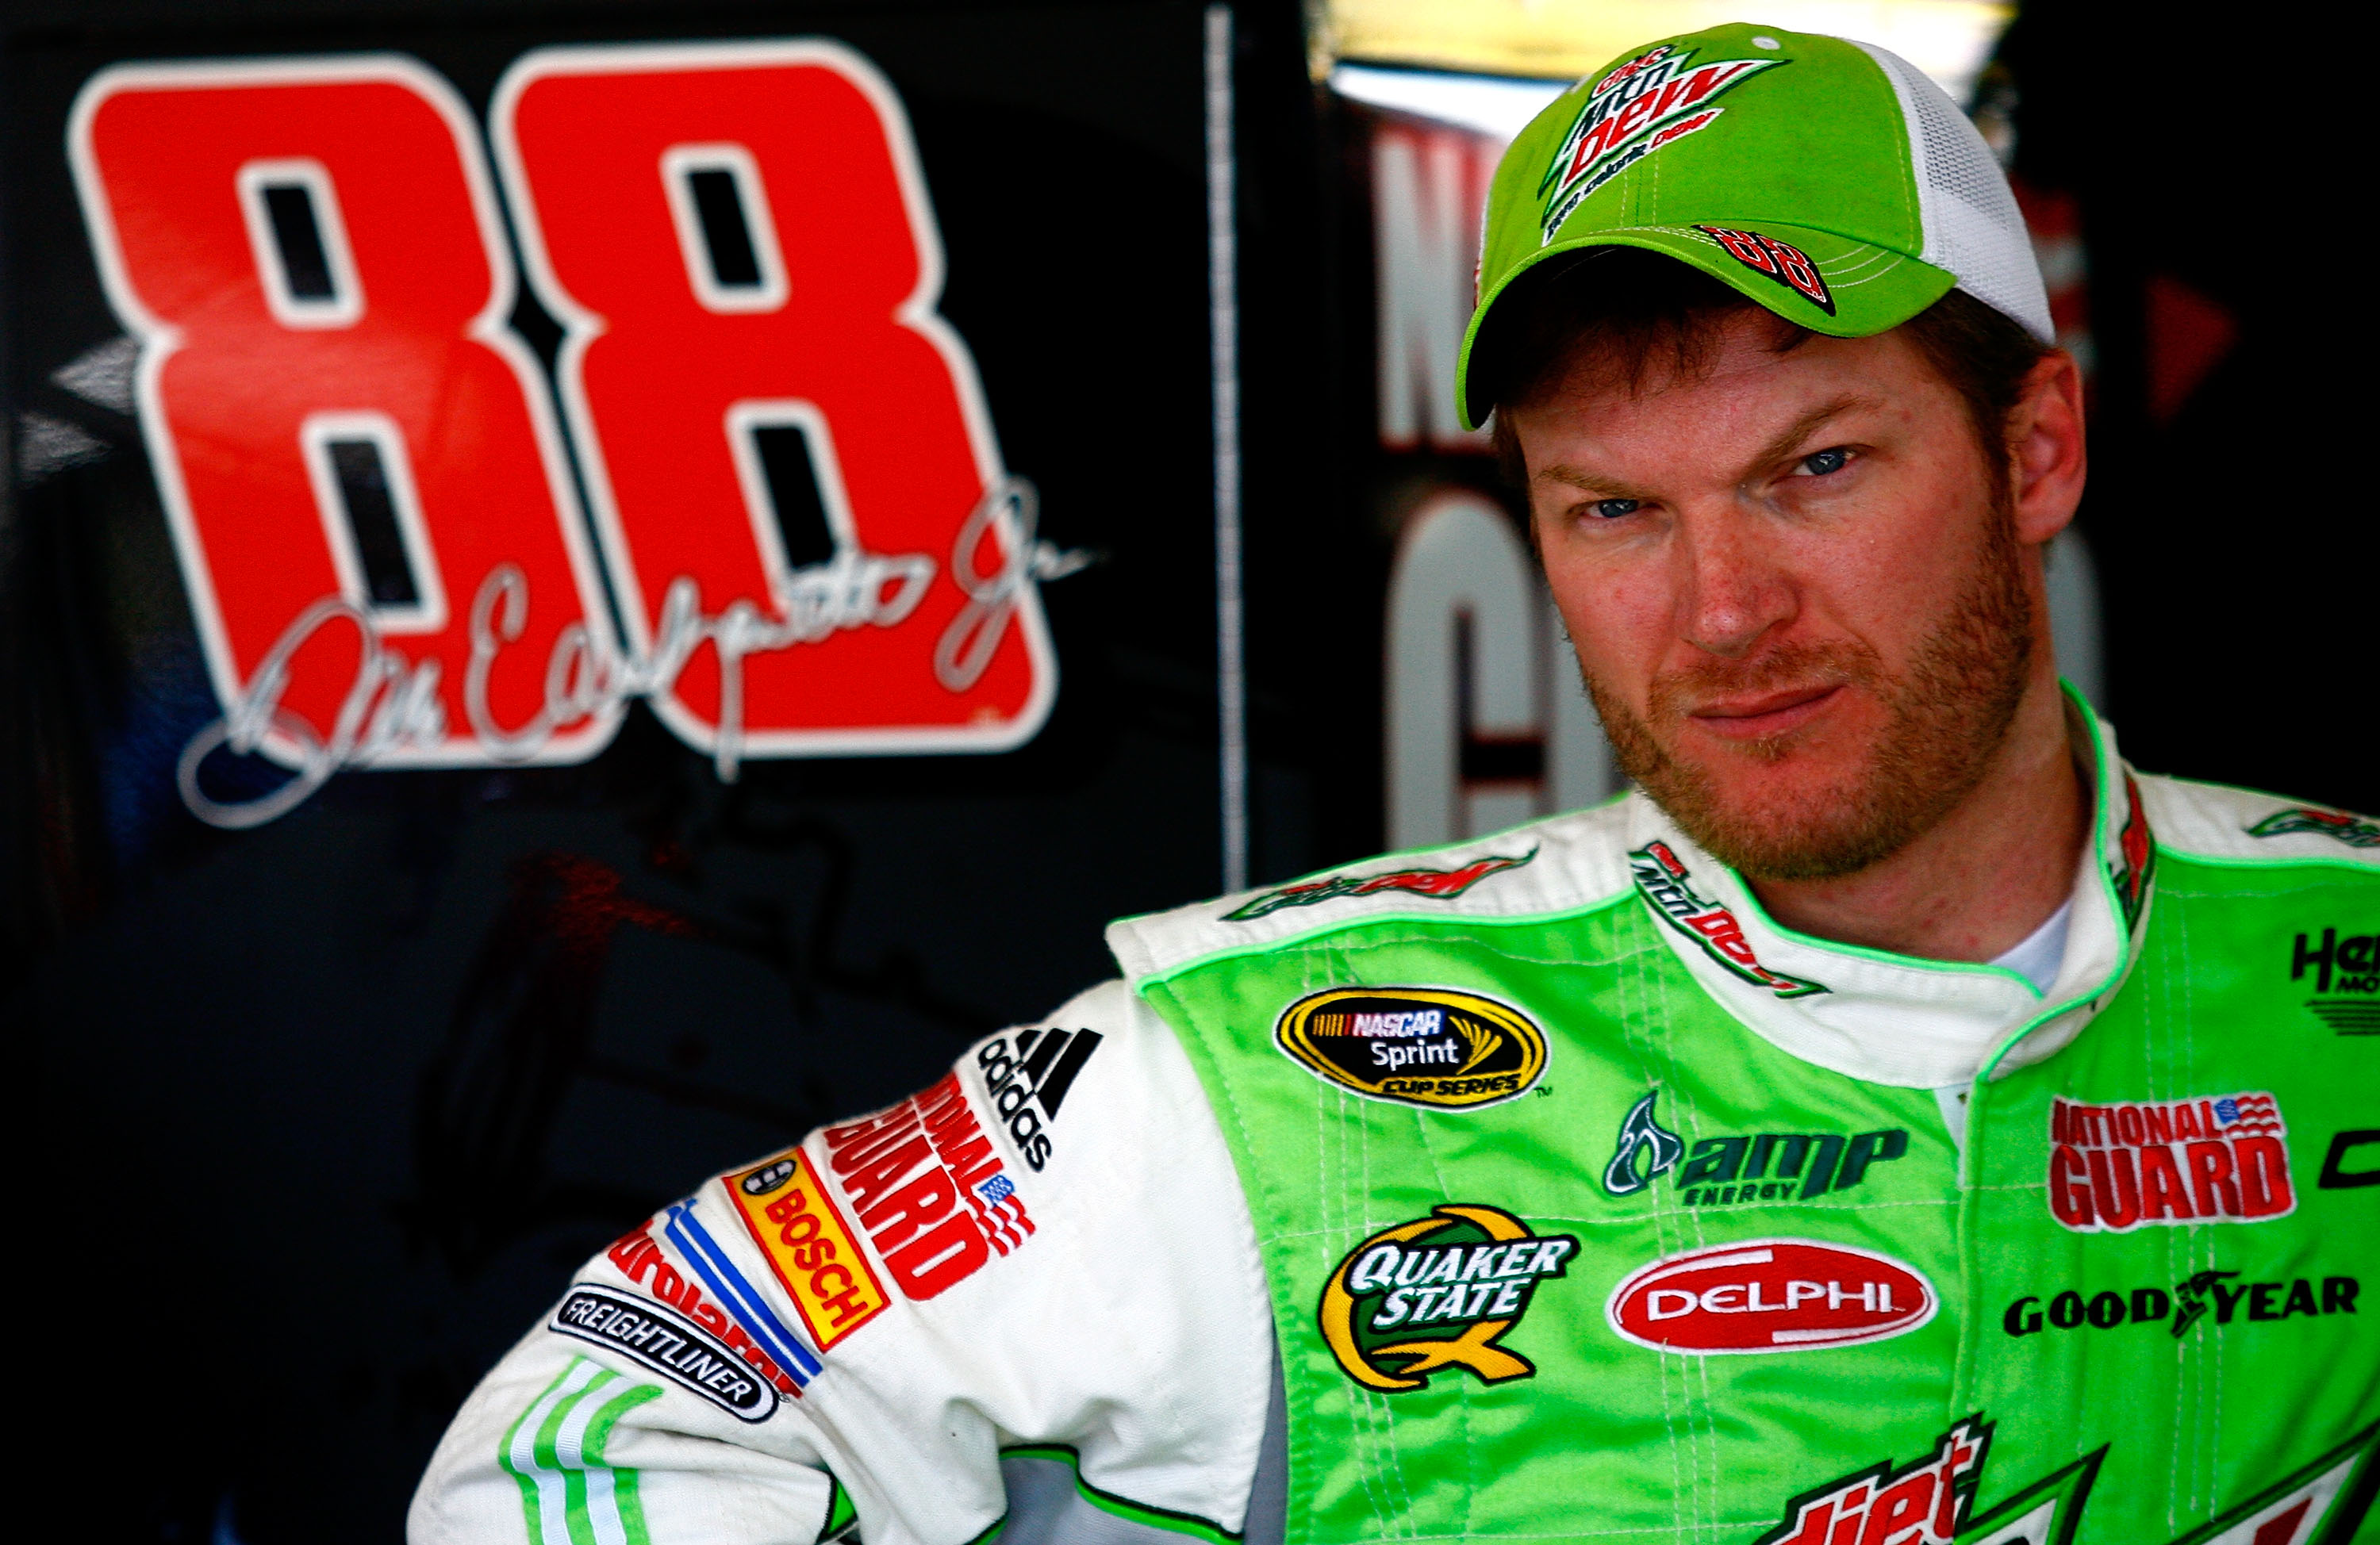 AVONDALE, AZ - NOVEMBER 13:  Dale Earnhardt Jr., driver of the #88 Diet Mountain Dew Chevrolet, stands in the garage area during practice for the NASCAR Sprint Cup Series Kobalt Tools 500 at Phoenix International Raceway on November 13, 2010 in Avondale,